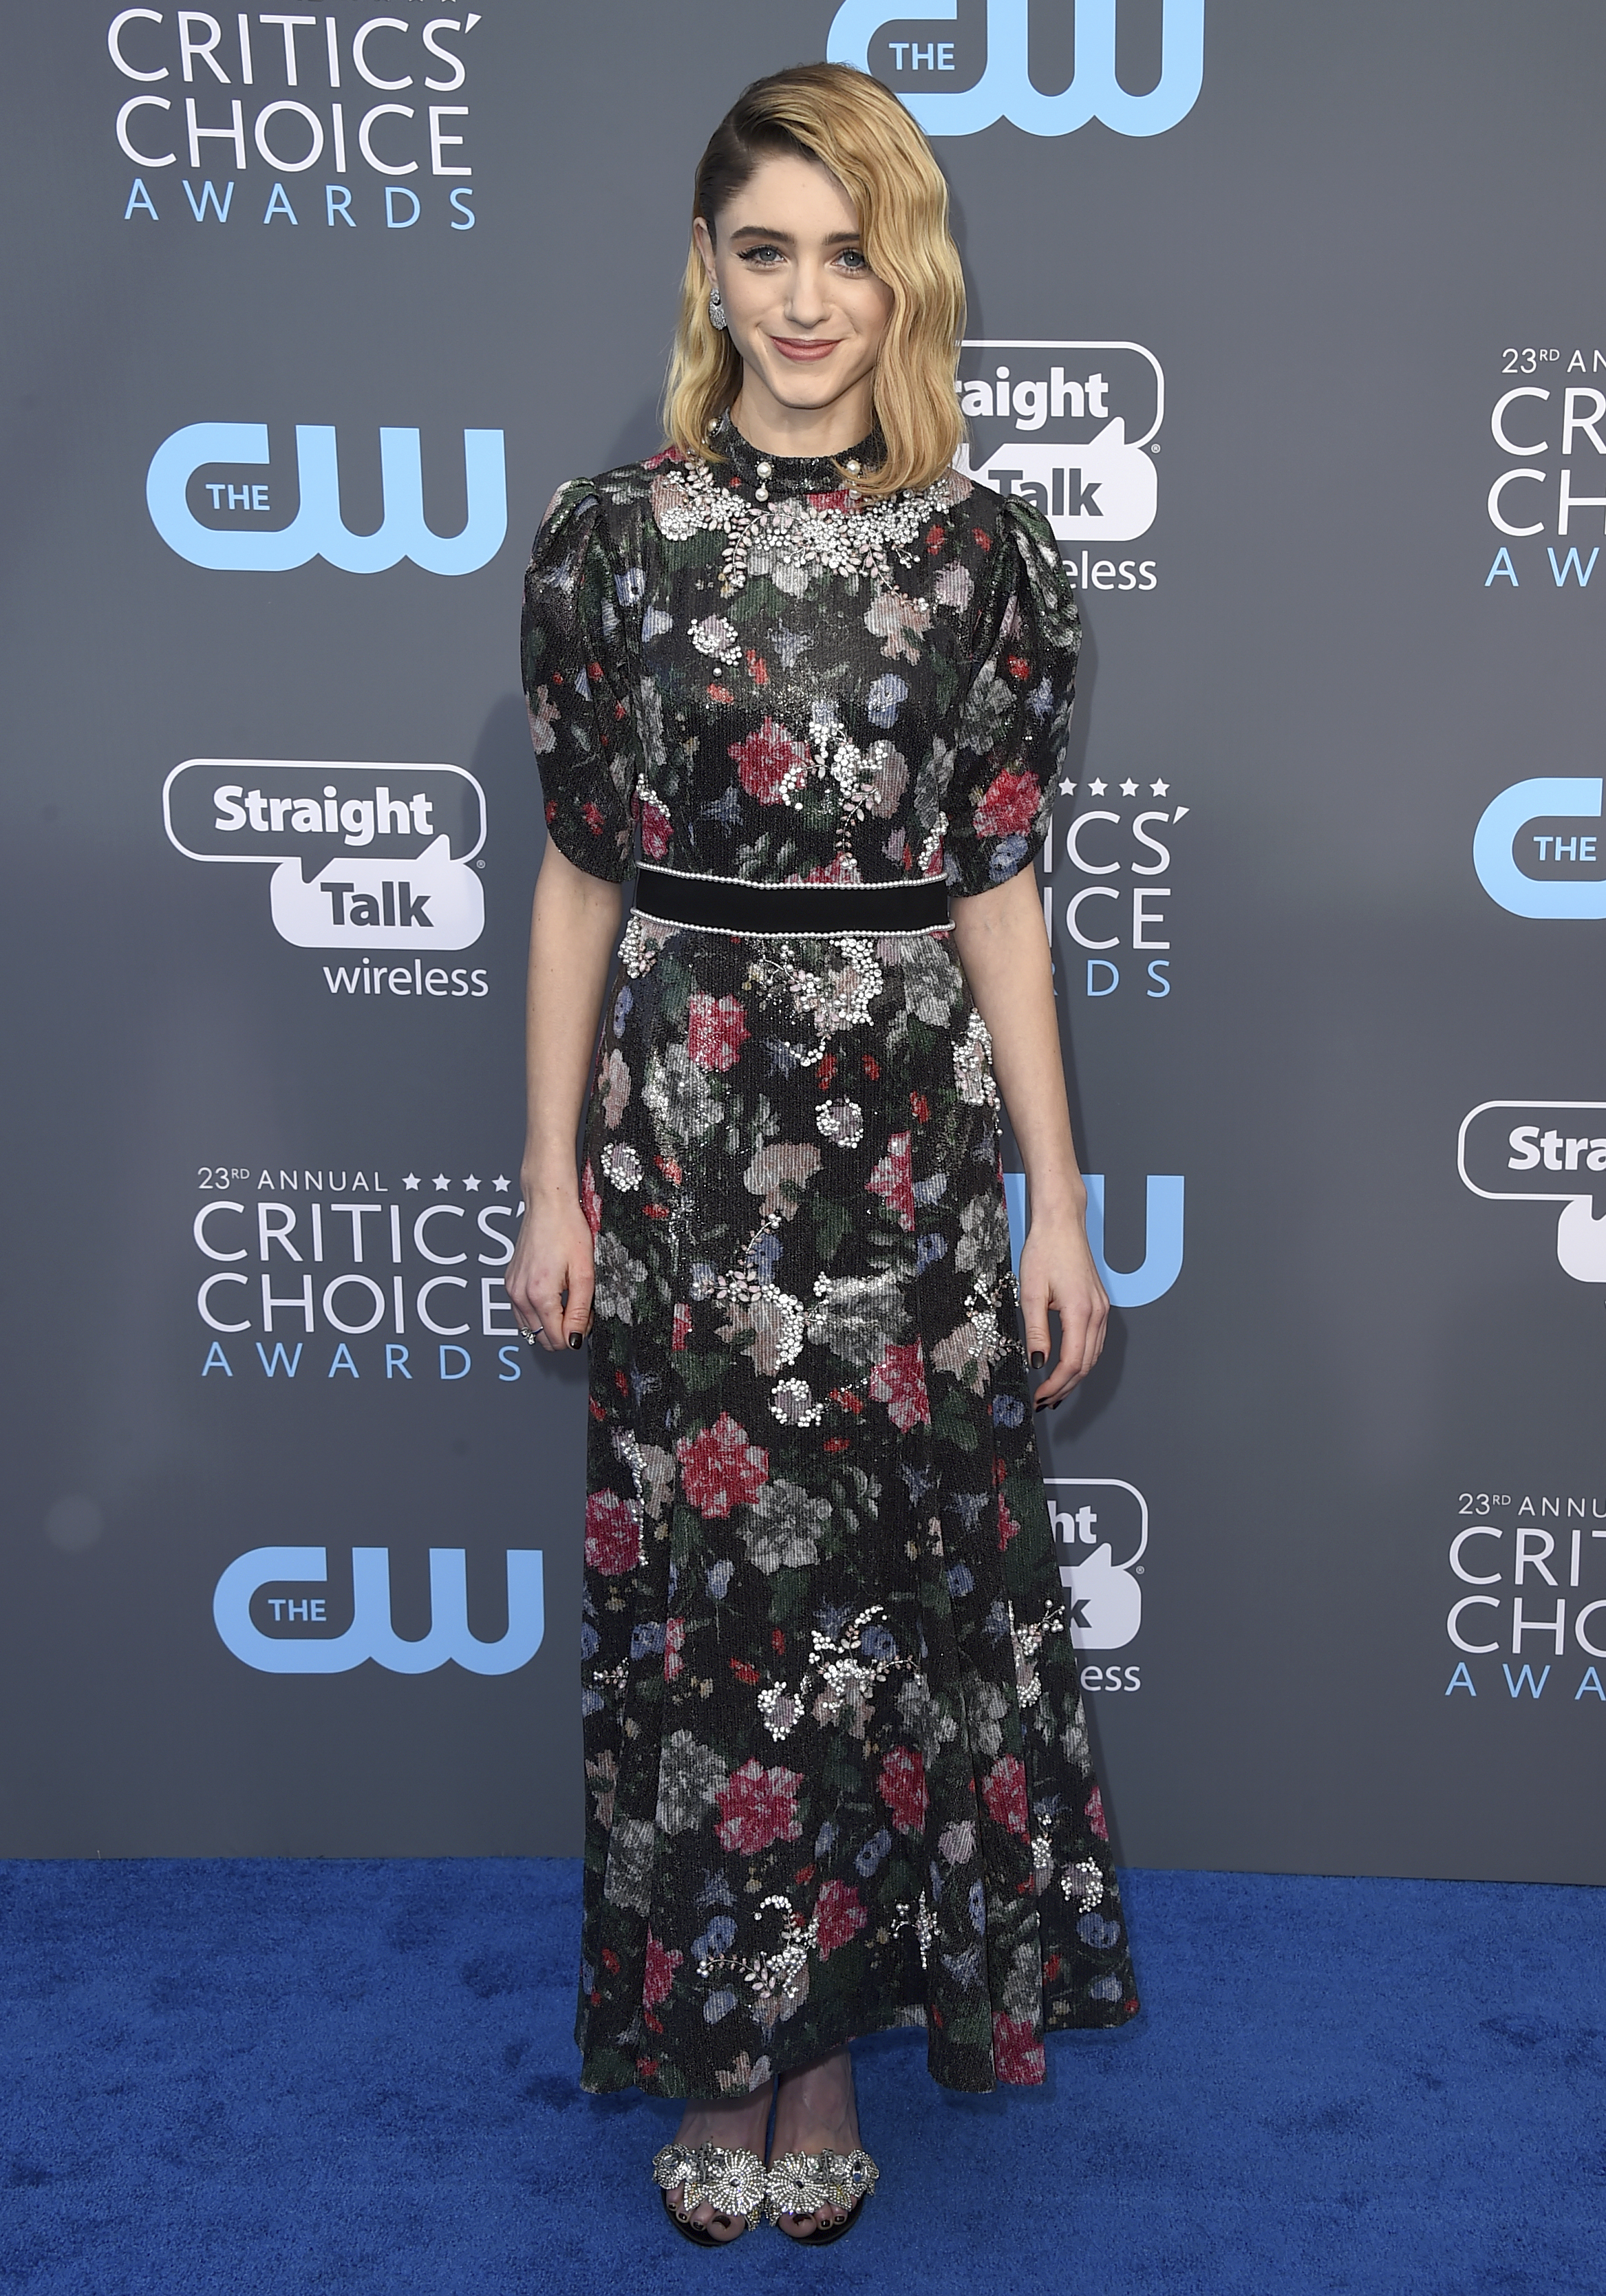 <div class='meta'><div class='origin-logo' data-origin='AP'></div><span class='caption-text' data-credit='Jordan Strauss/Invision/AP'>Natalia Dyer arrives at the 23rd annual Critics' Choice Awards at the Barker Hangar on Thursday, Jan. 11, 2018, in Santa Monica, Calif. (Photo by Jordan Strauss/Invision/AP)</span></div>